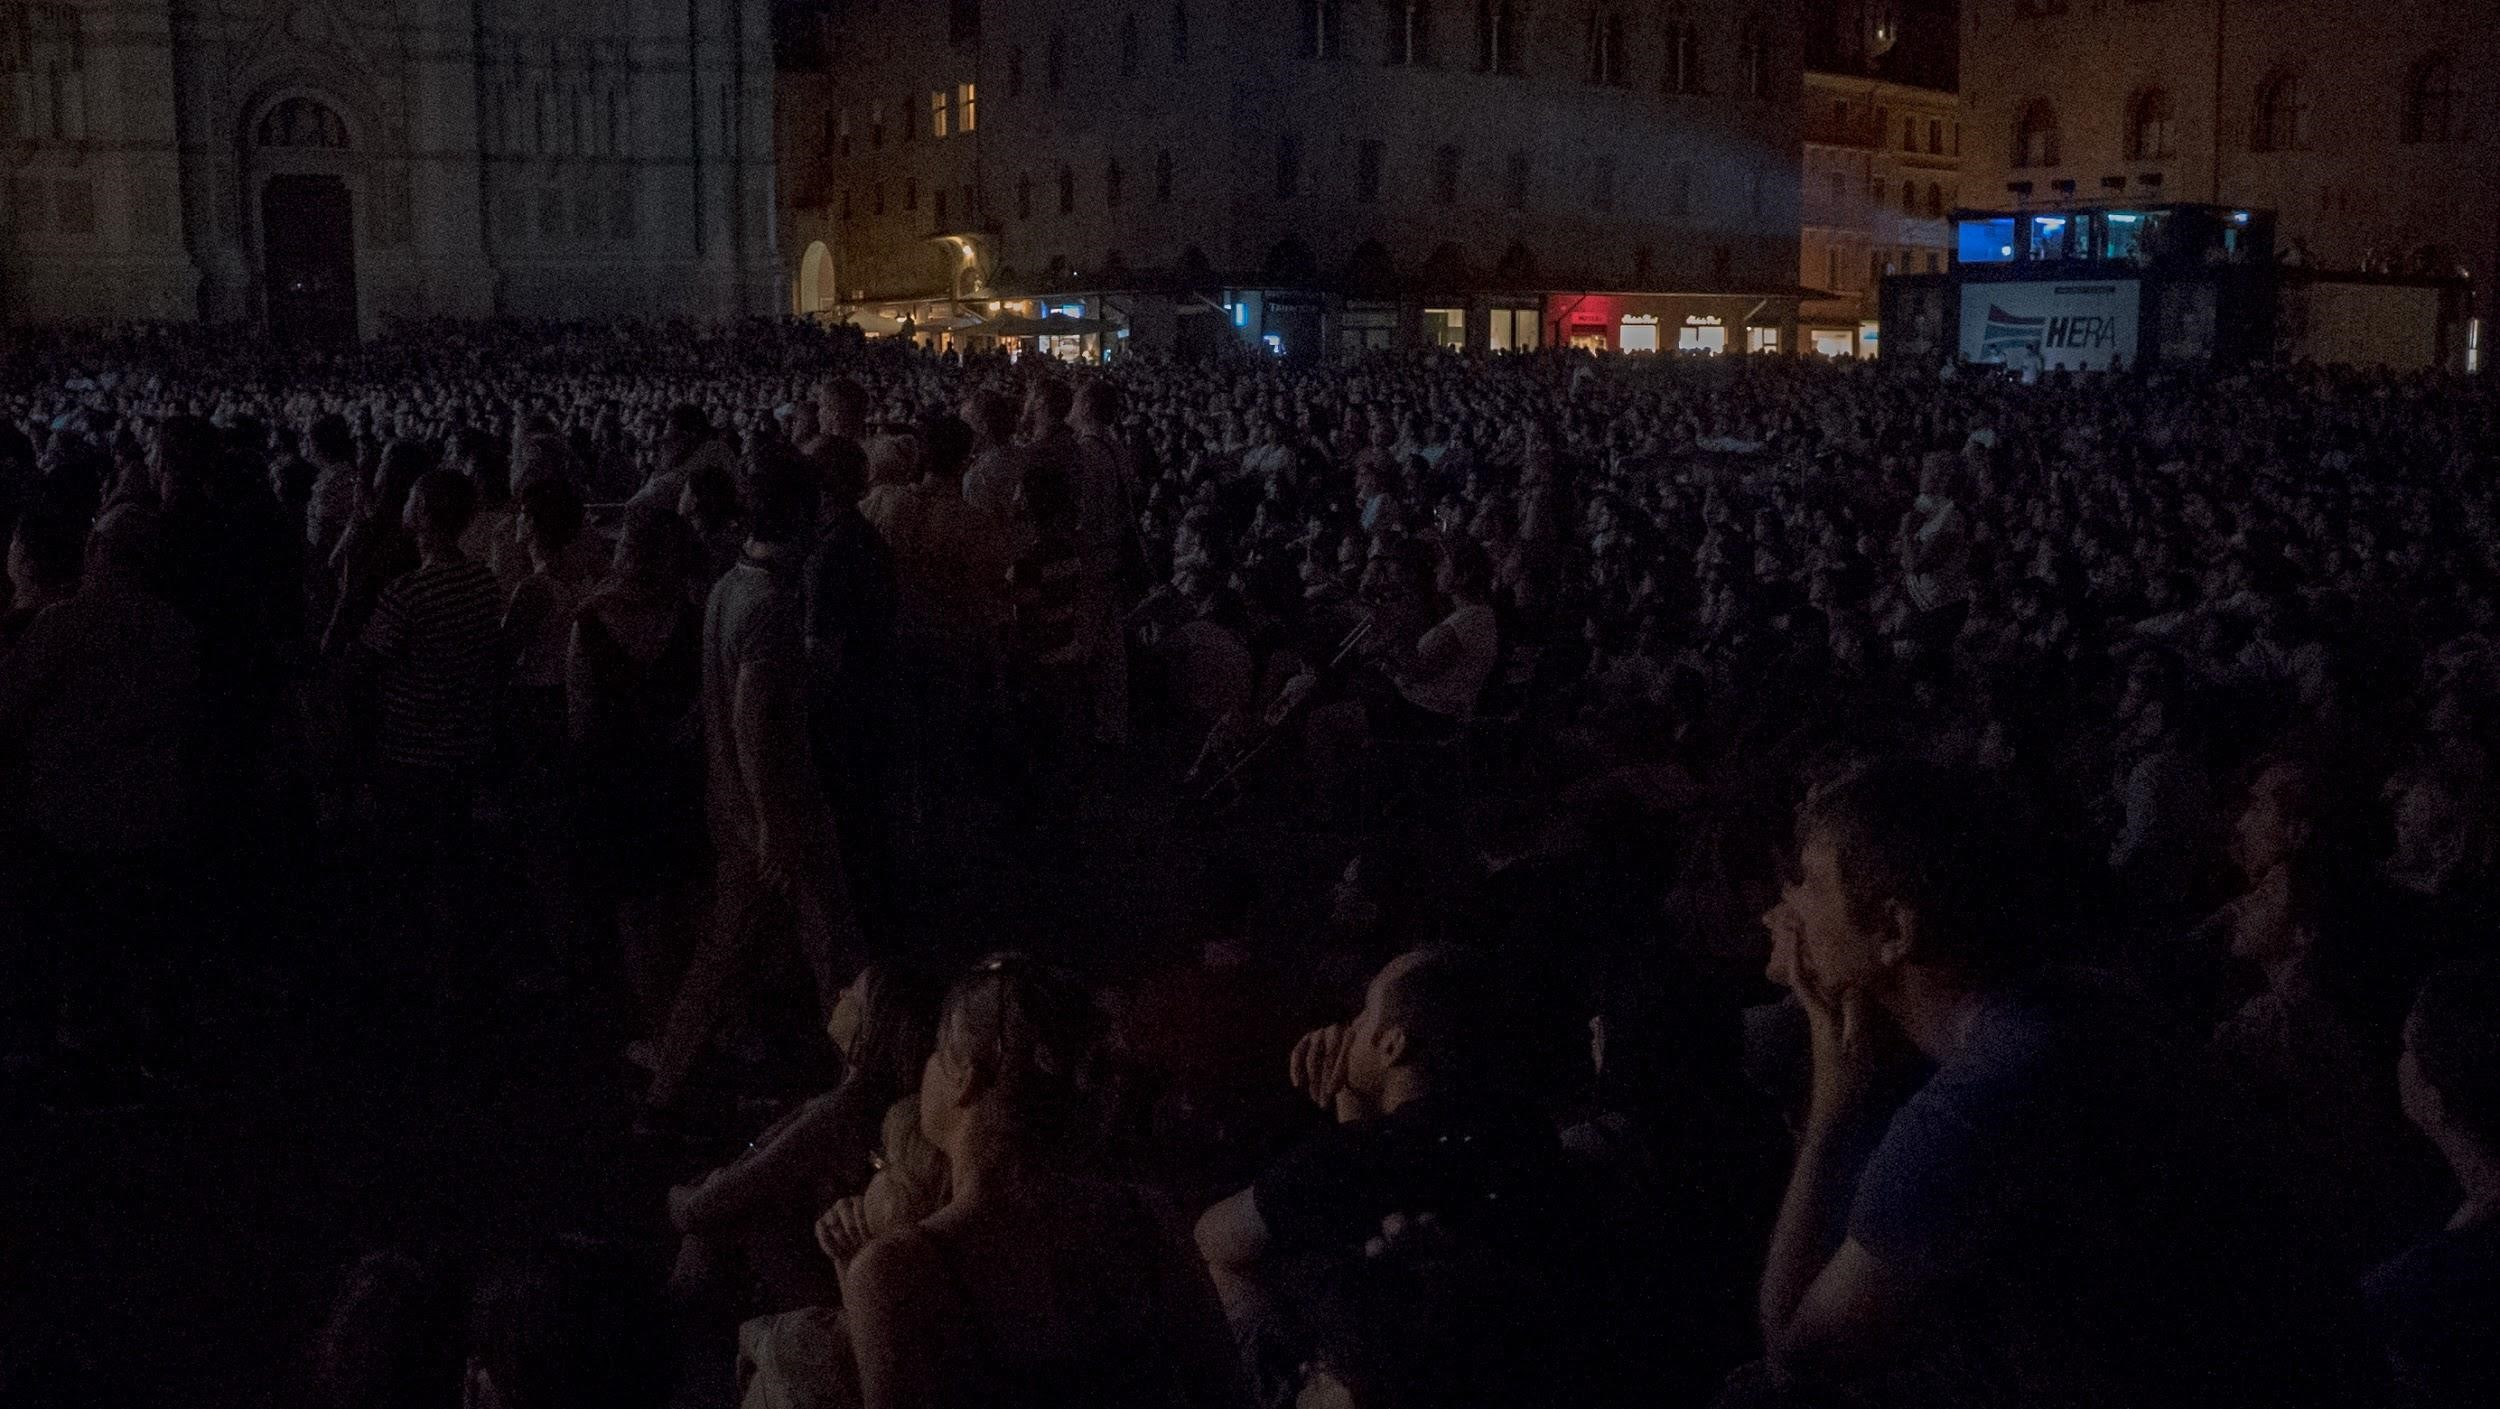 Modern Times (1936). An estimated 7,000 people were at Piazza Maggiore that night.